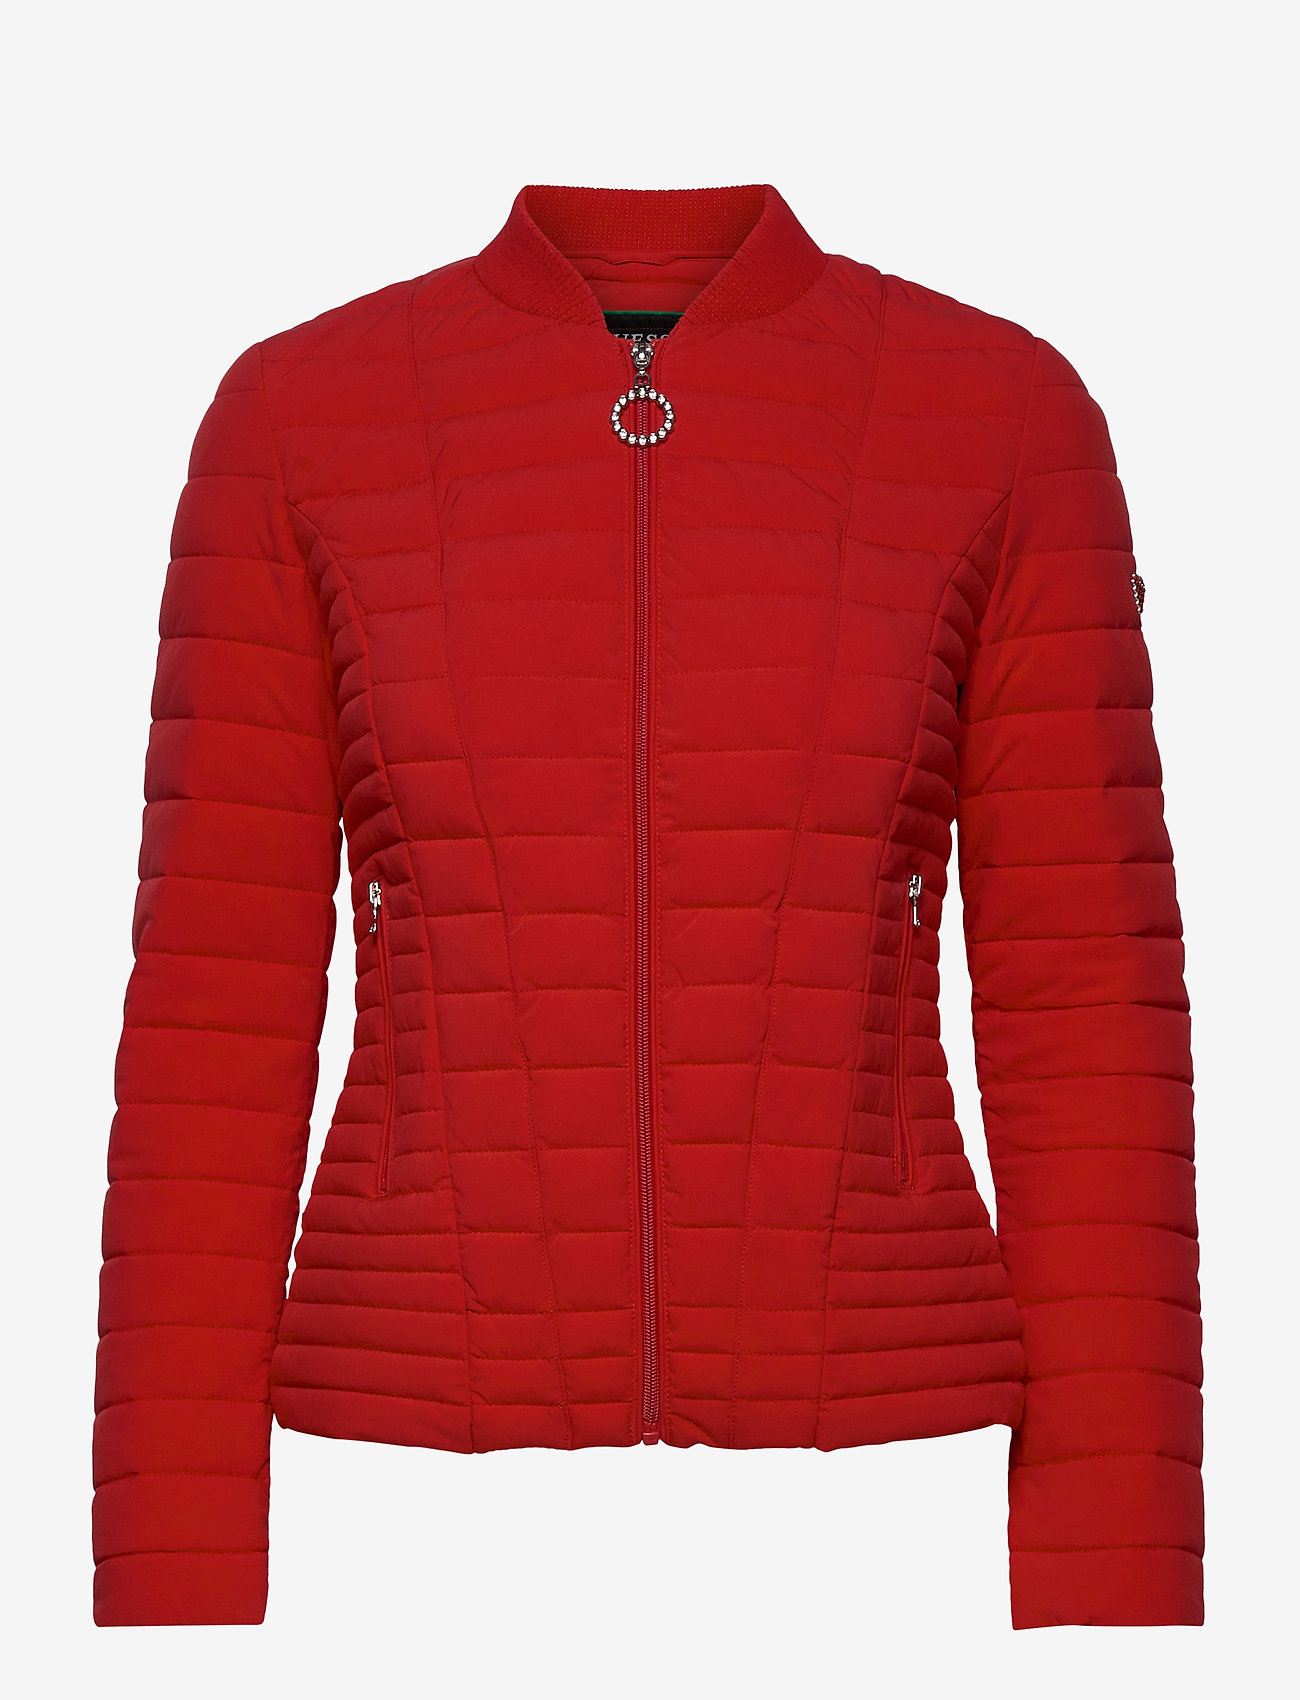 Vera Jacket (Necessary Red) (1599 kr) GUESS Jeans